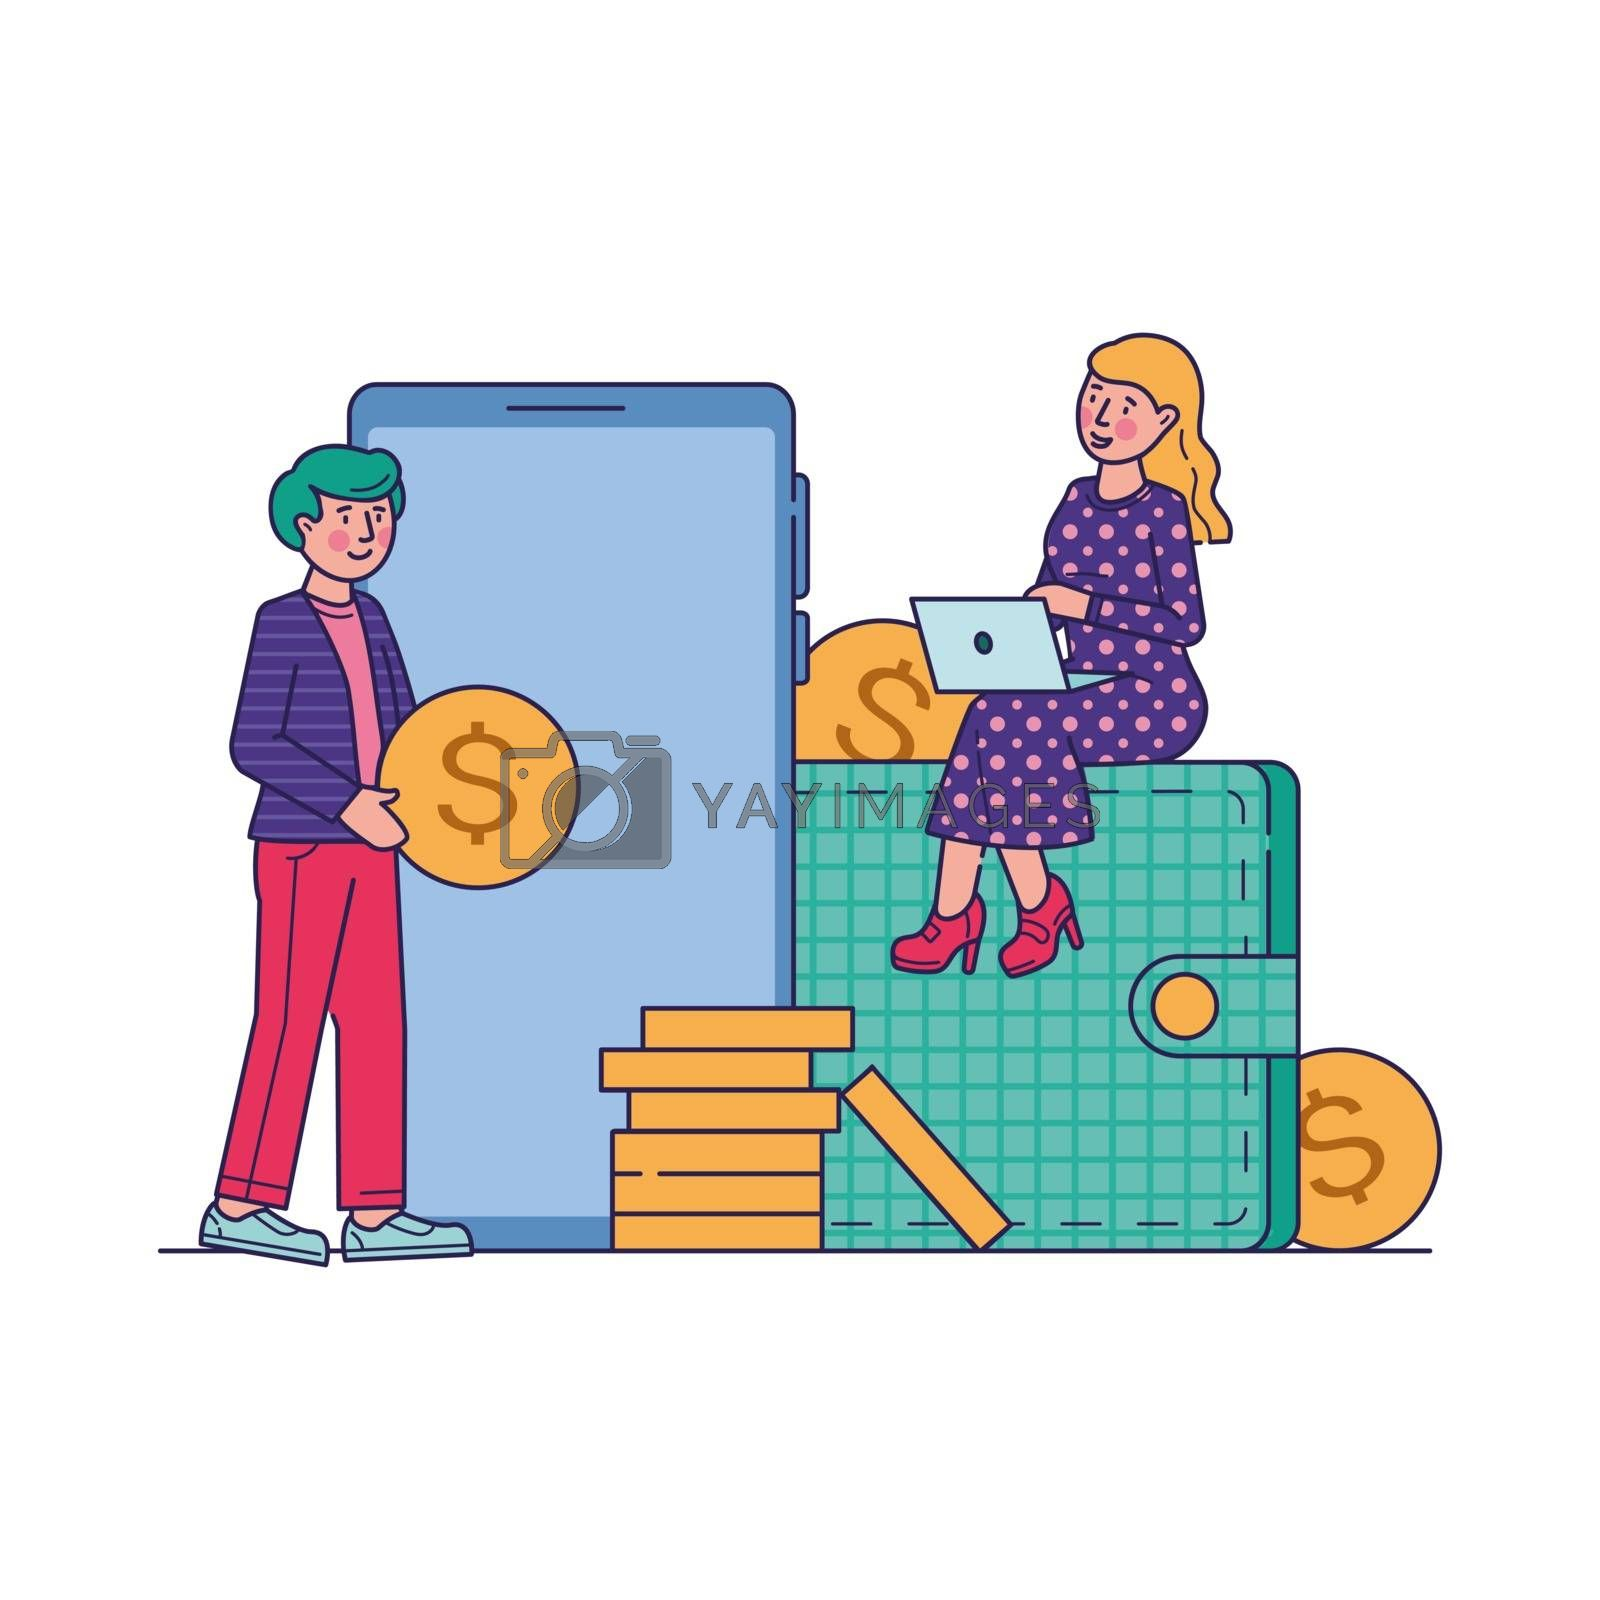 E-commerce market shopping online vector illustration. Mobile payment or money transfer concept. Money transferring via smartphone app and web banking